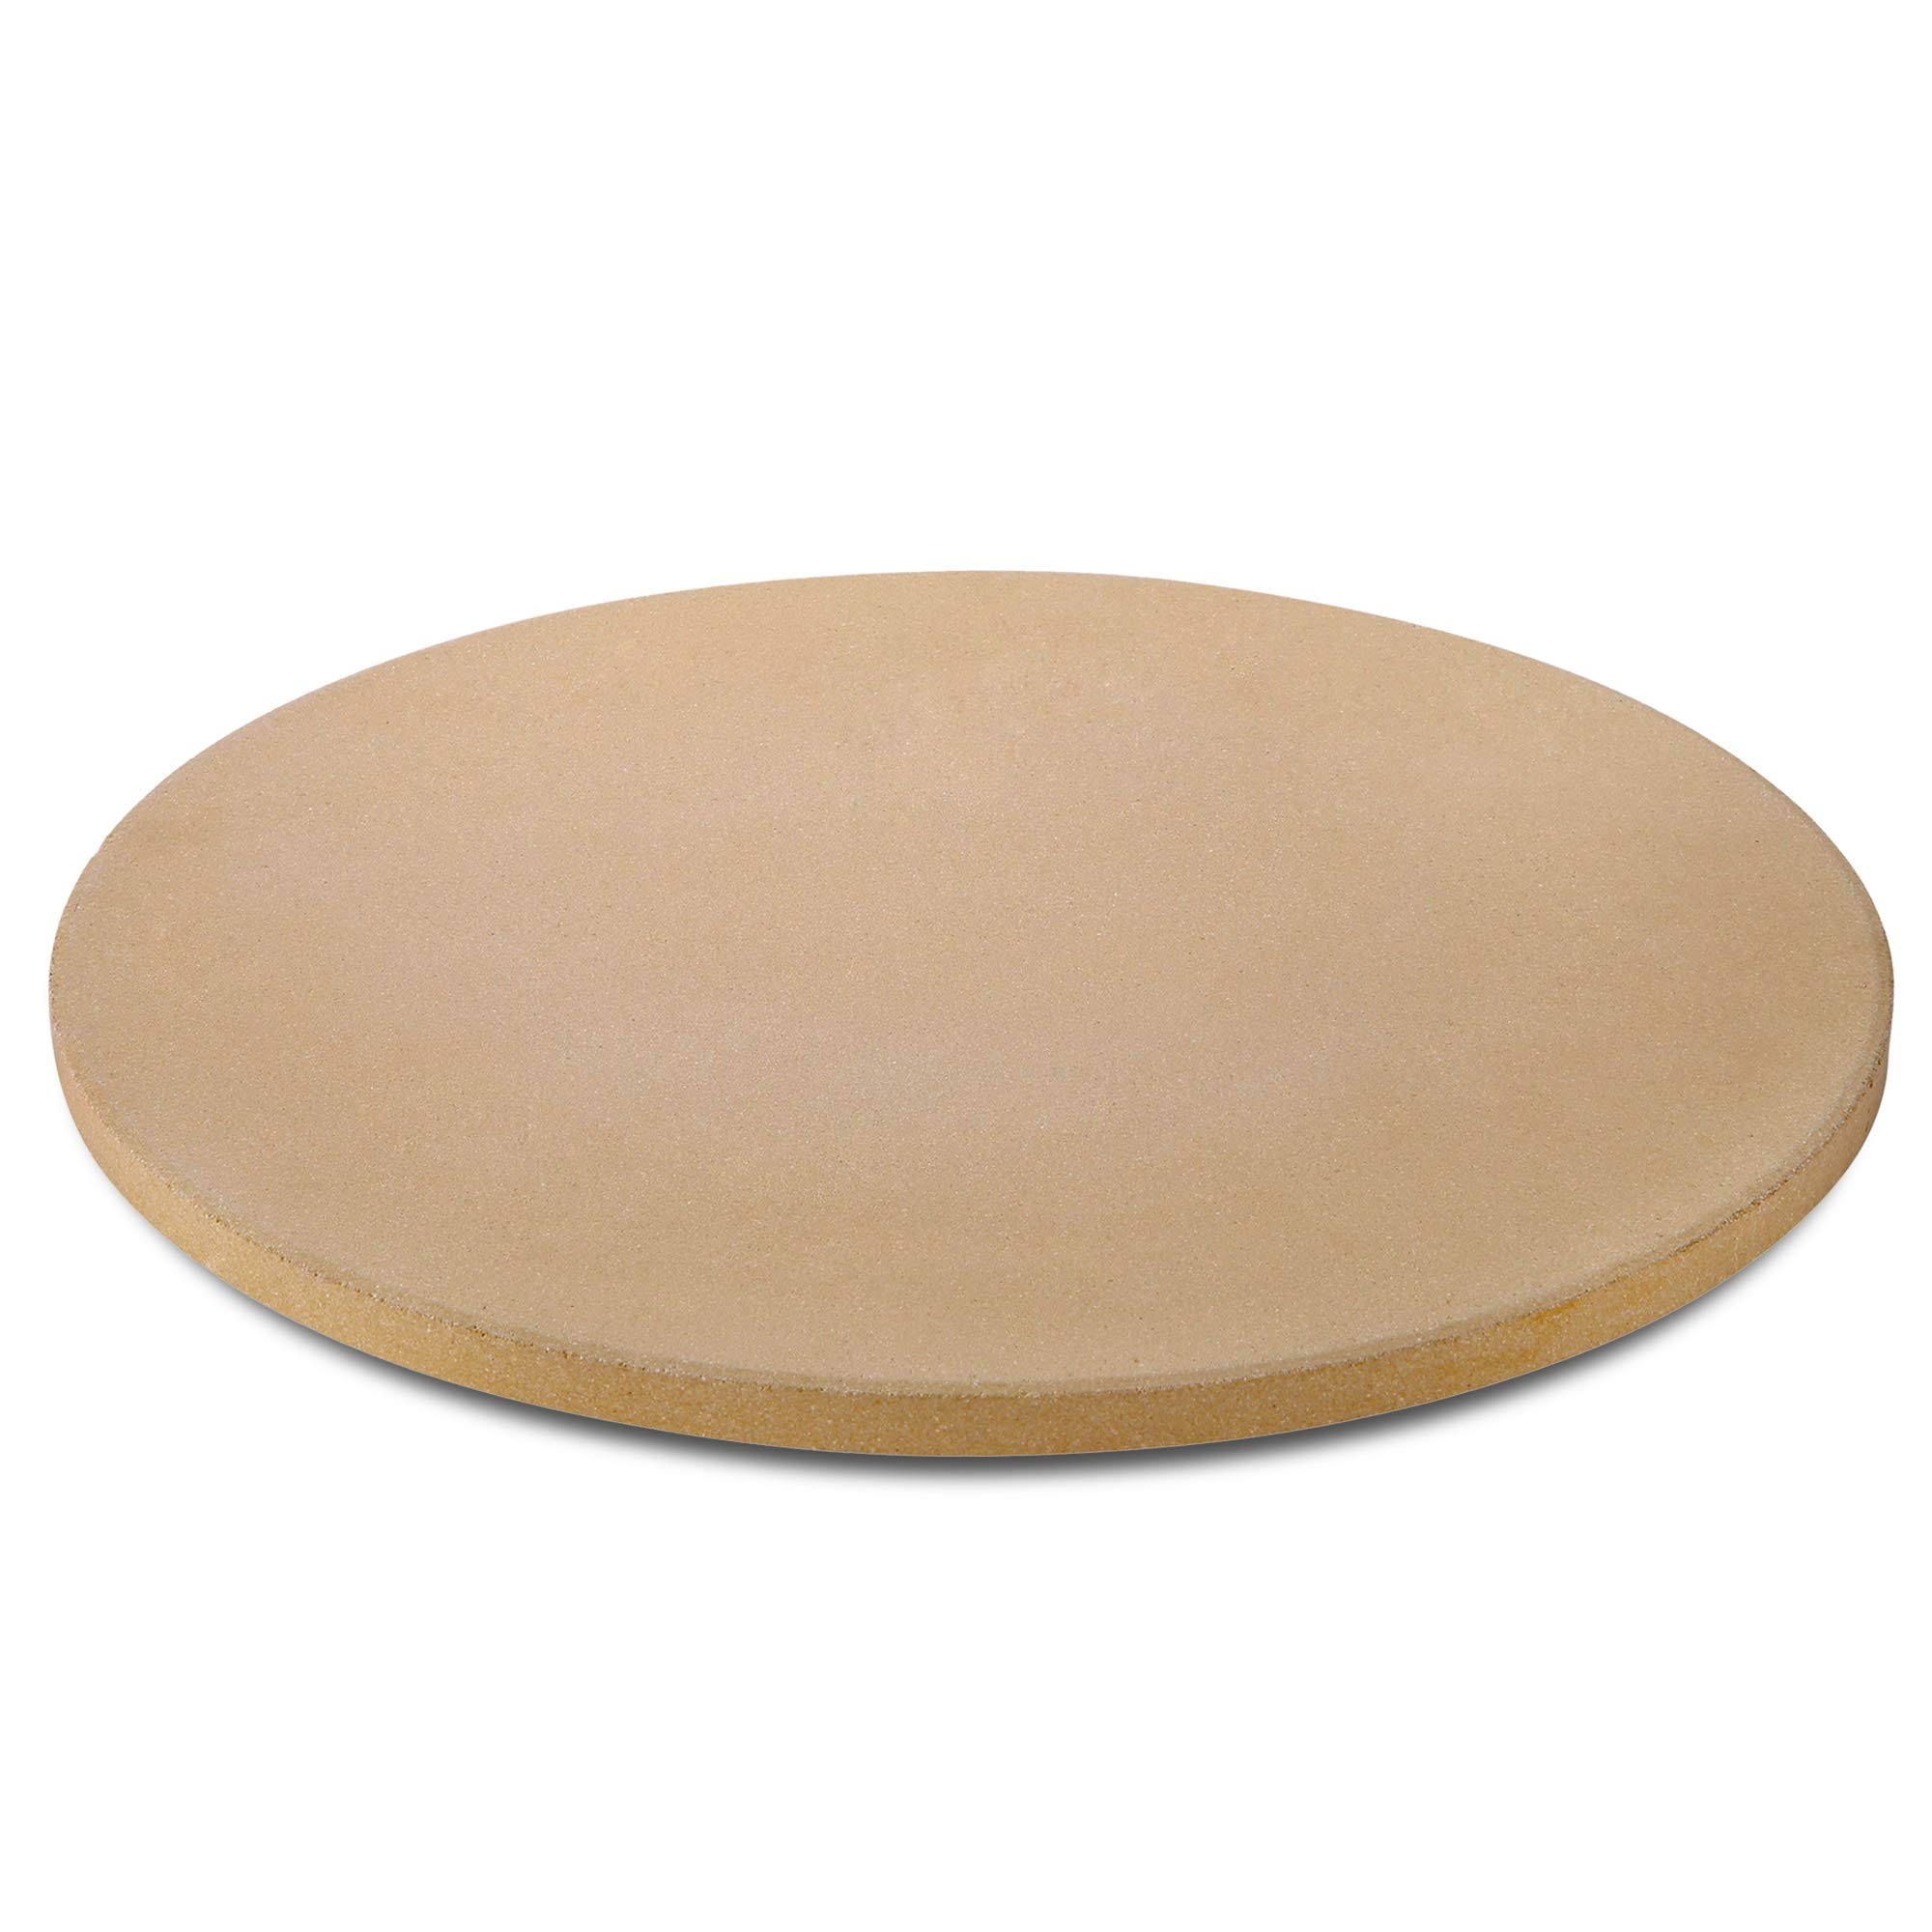 UNICOOK Heavy Duty Ceramic Pizza Grilling Stone, 15 Inch Round Baking Stone, Pizza Pan, Perfect for Oven, BBQ and Grill, Thermal Shock Resistant, Durable and Safe, 6.5lbs by Unicook